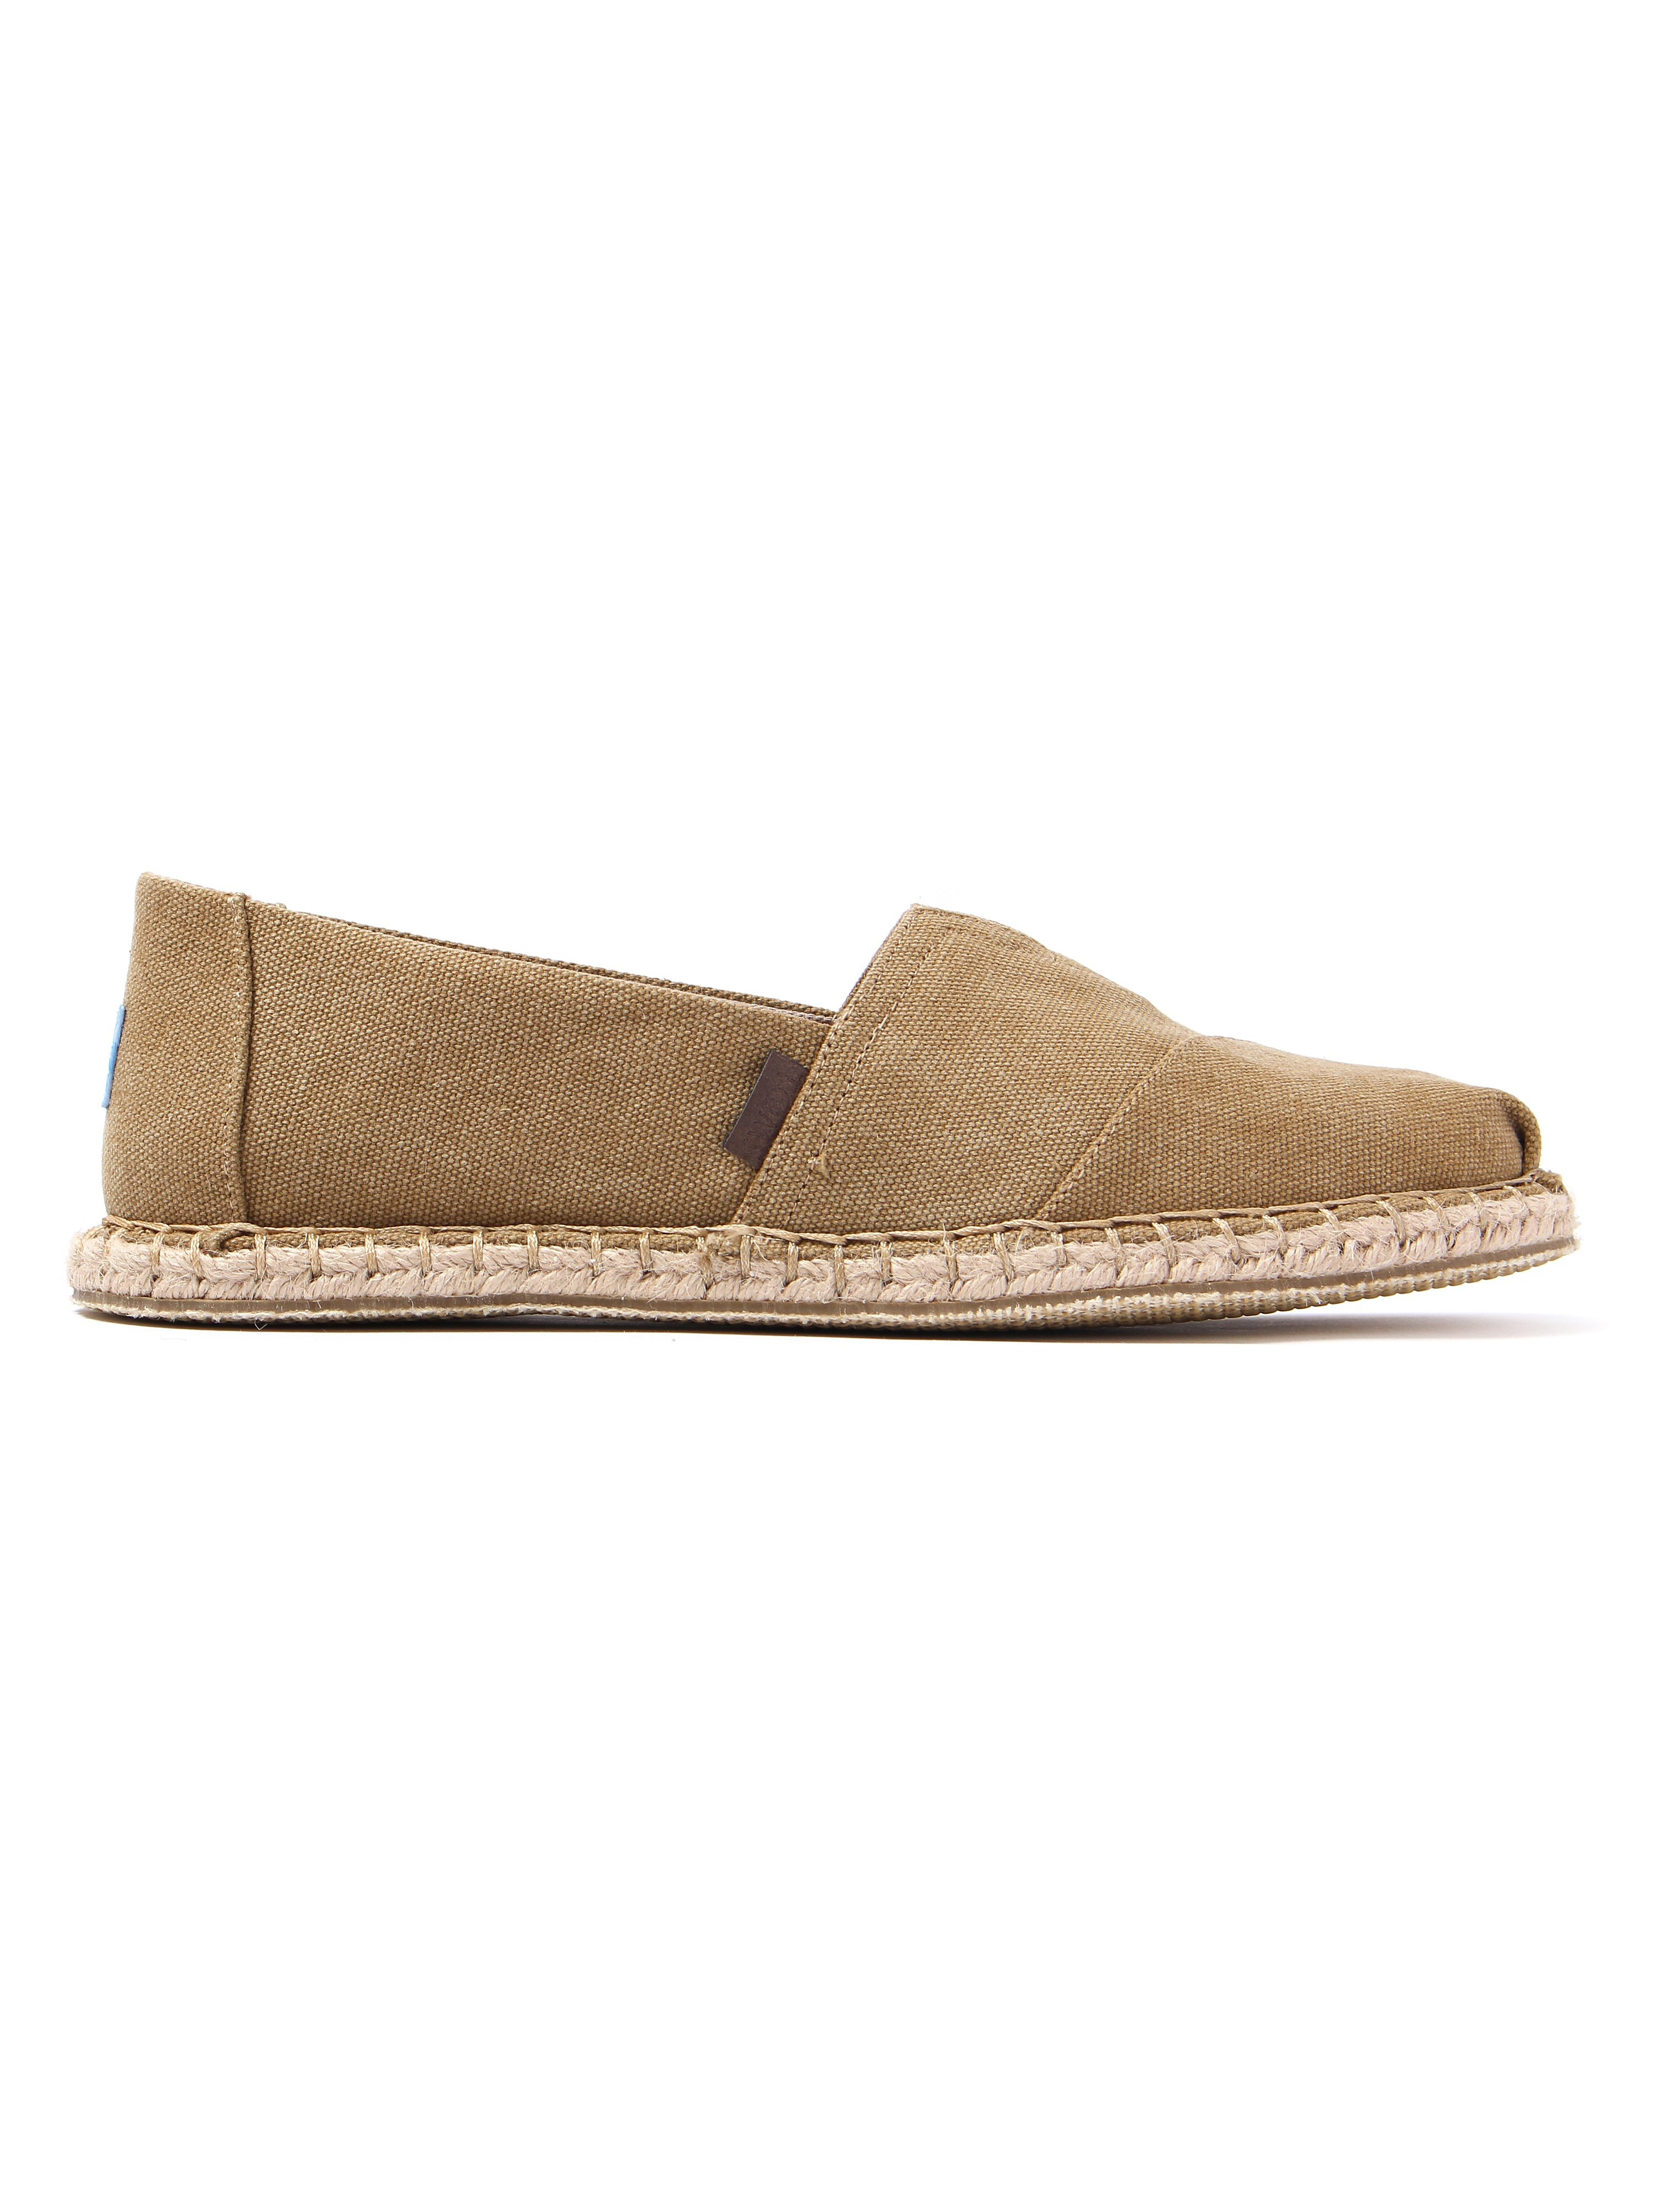 Toms Men's Classic Washed Canvas Blanket Stitch Slip-On Espadrilles - Toffee